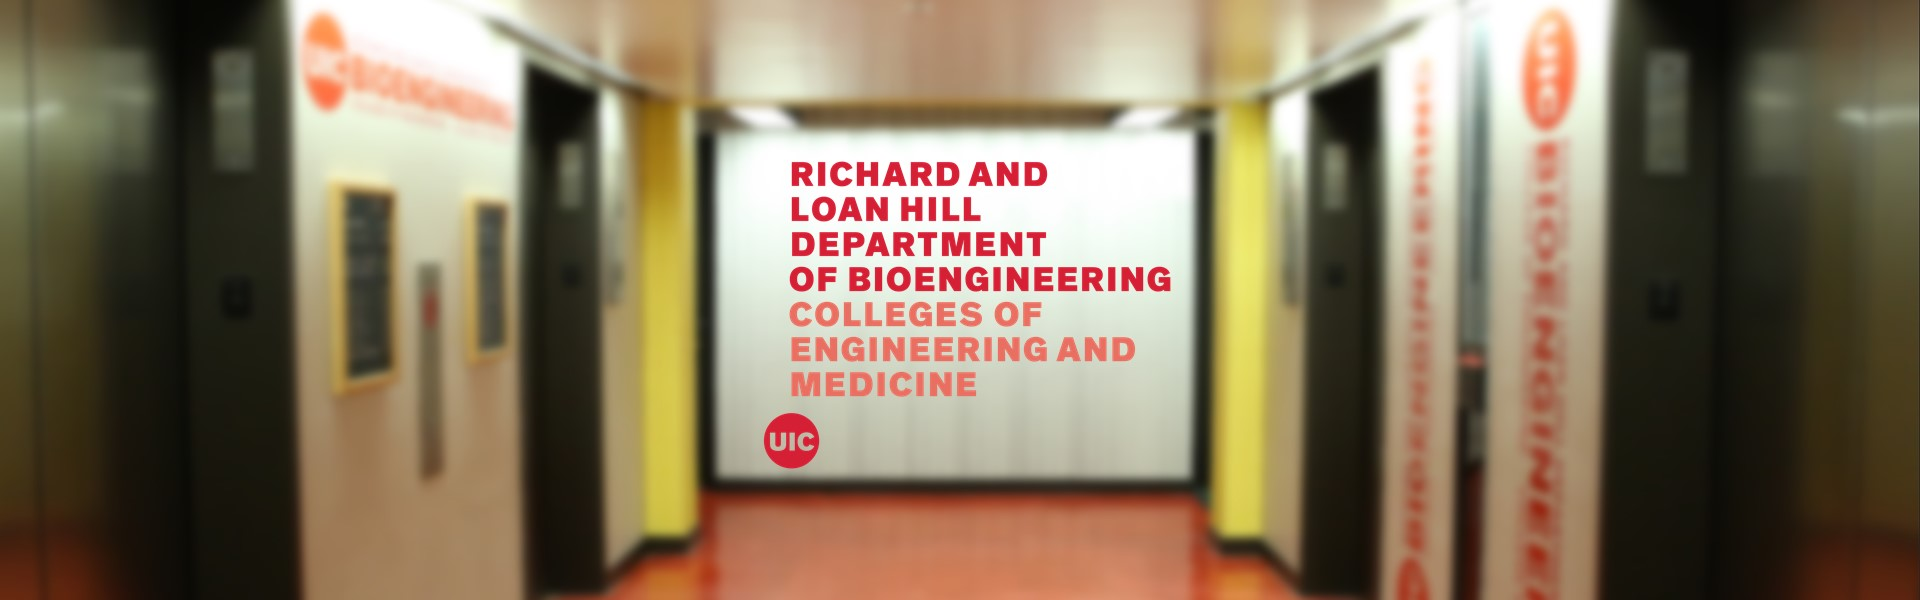 Richard and Loan Hill Department of Bioengineering